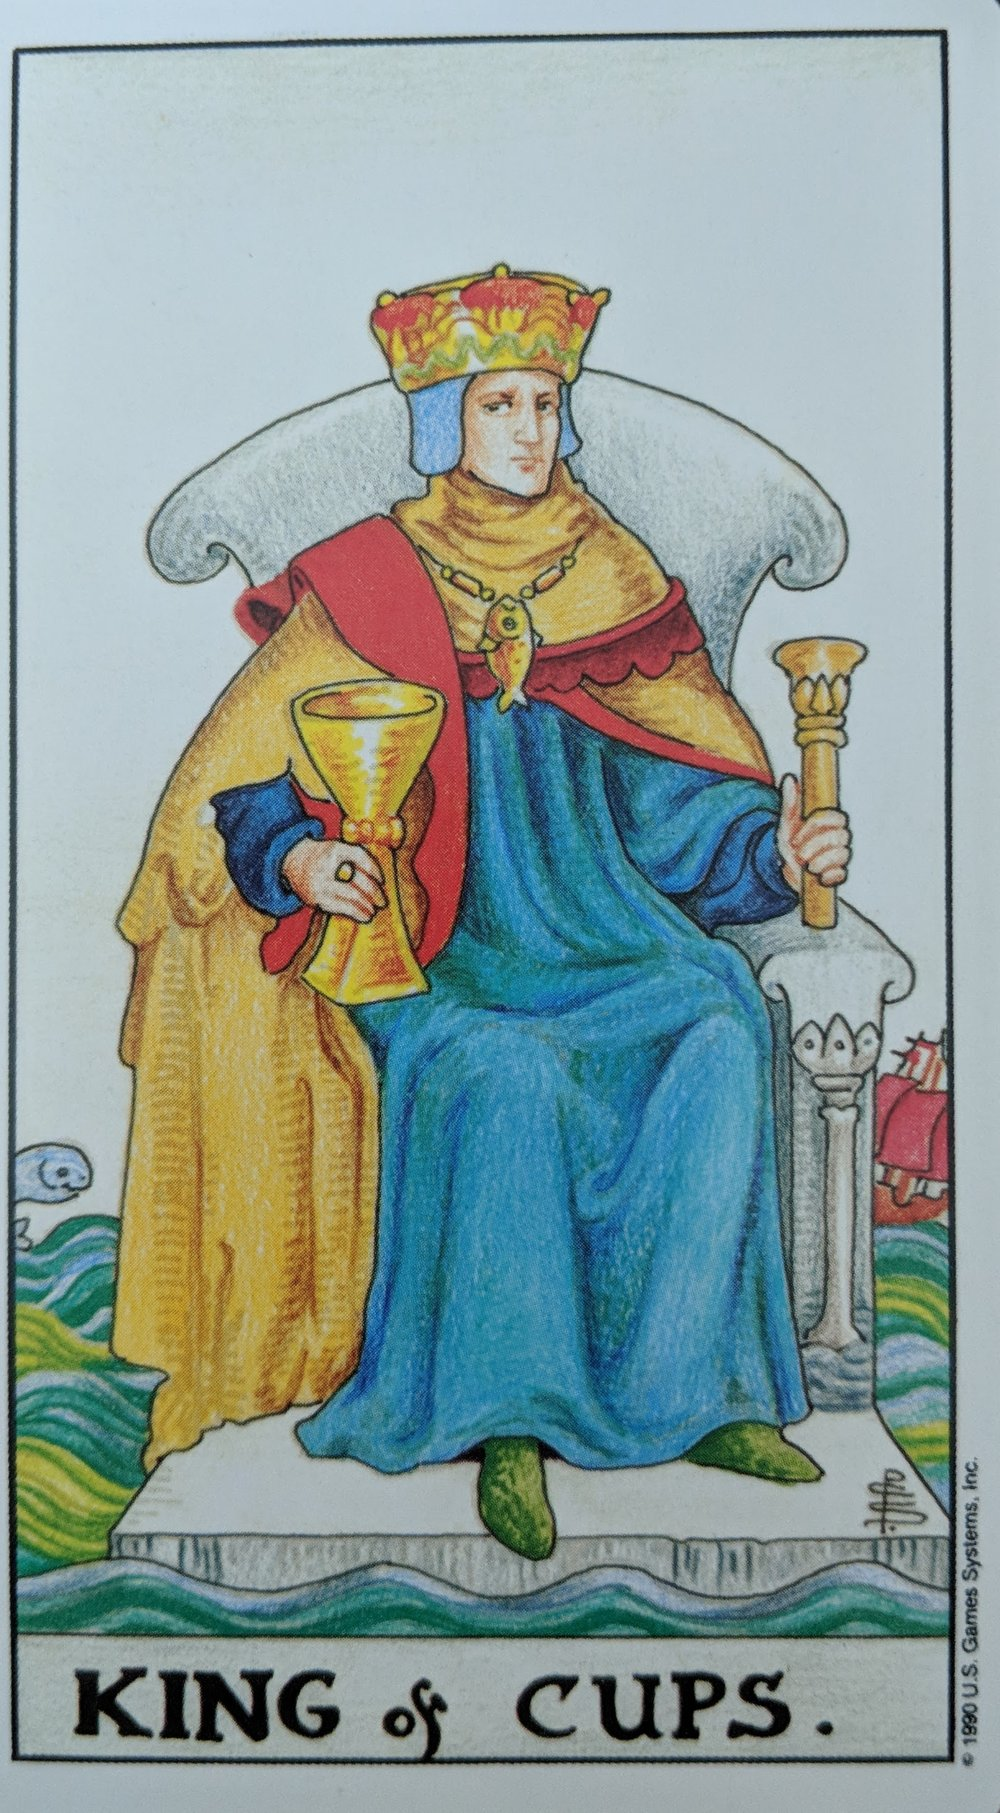 king of cups tarot card.jpg